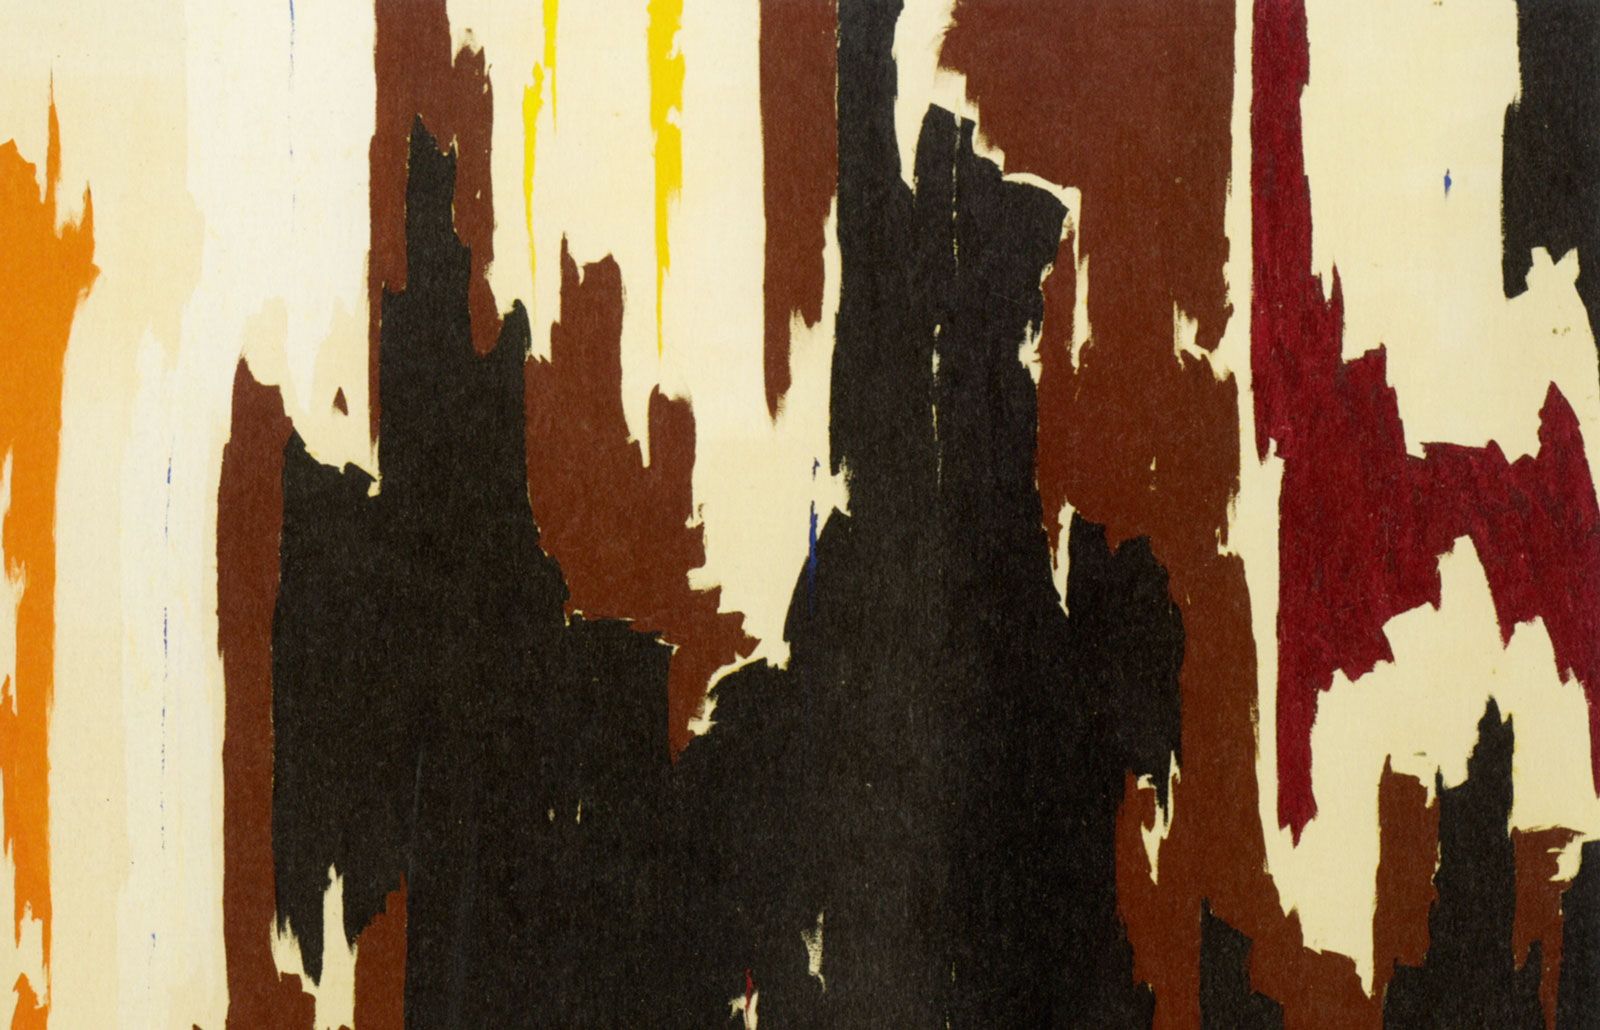 Clyfford Still: PH-150 (detail), 1958; click image to enlarge